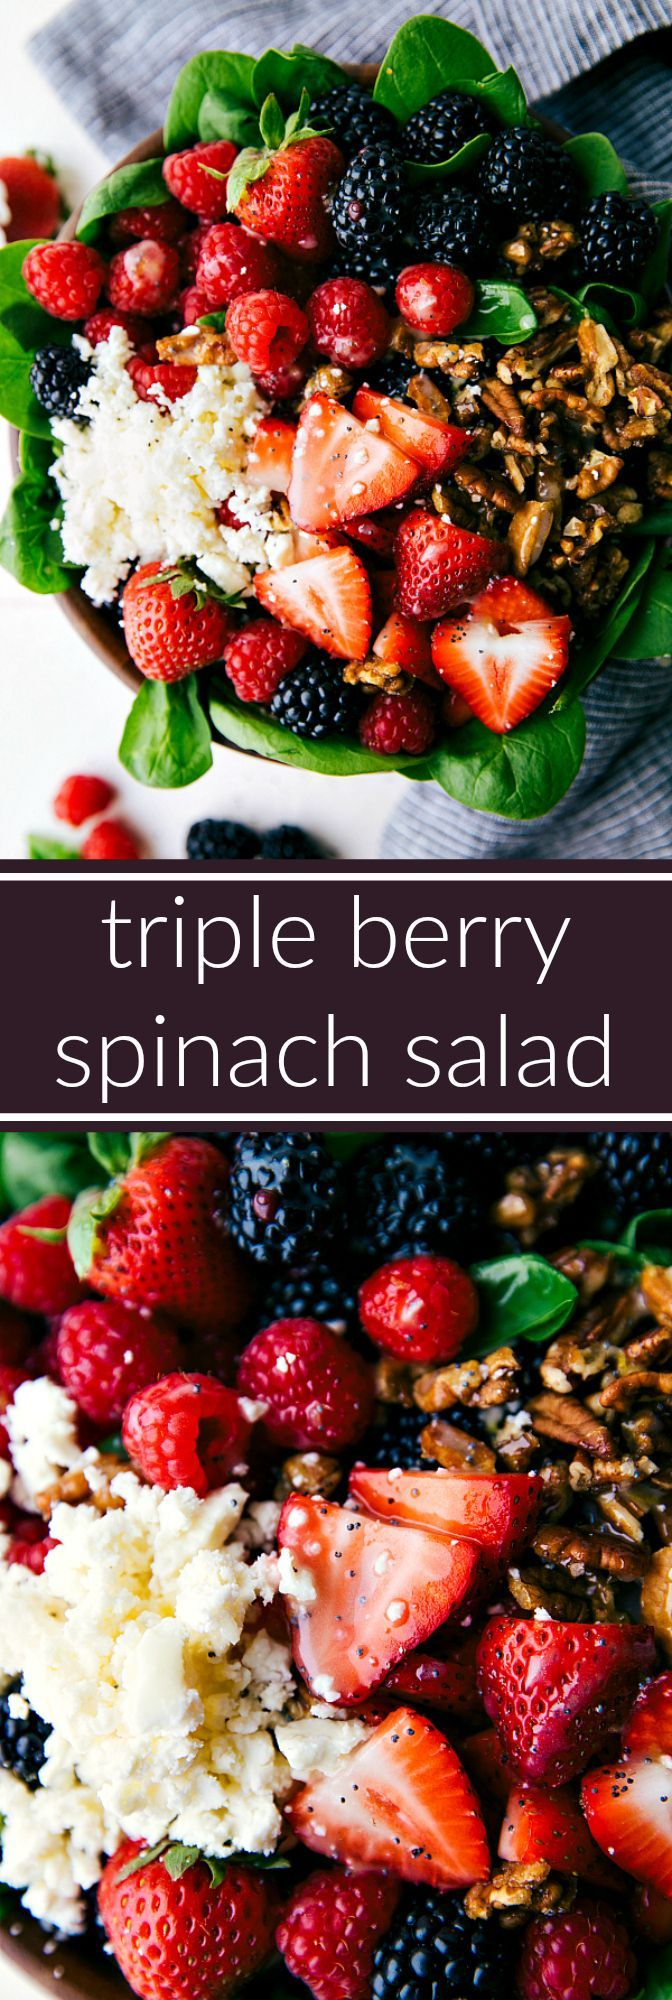 The BEST sweet lemon poppyseed dressing (no mayo), easy candied pecans, and fresh berries over a bed of spinach. This spinach salad is delicious and great to serve to a crowd!